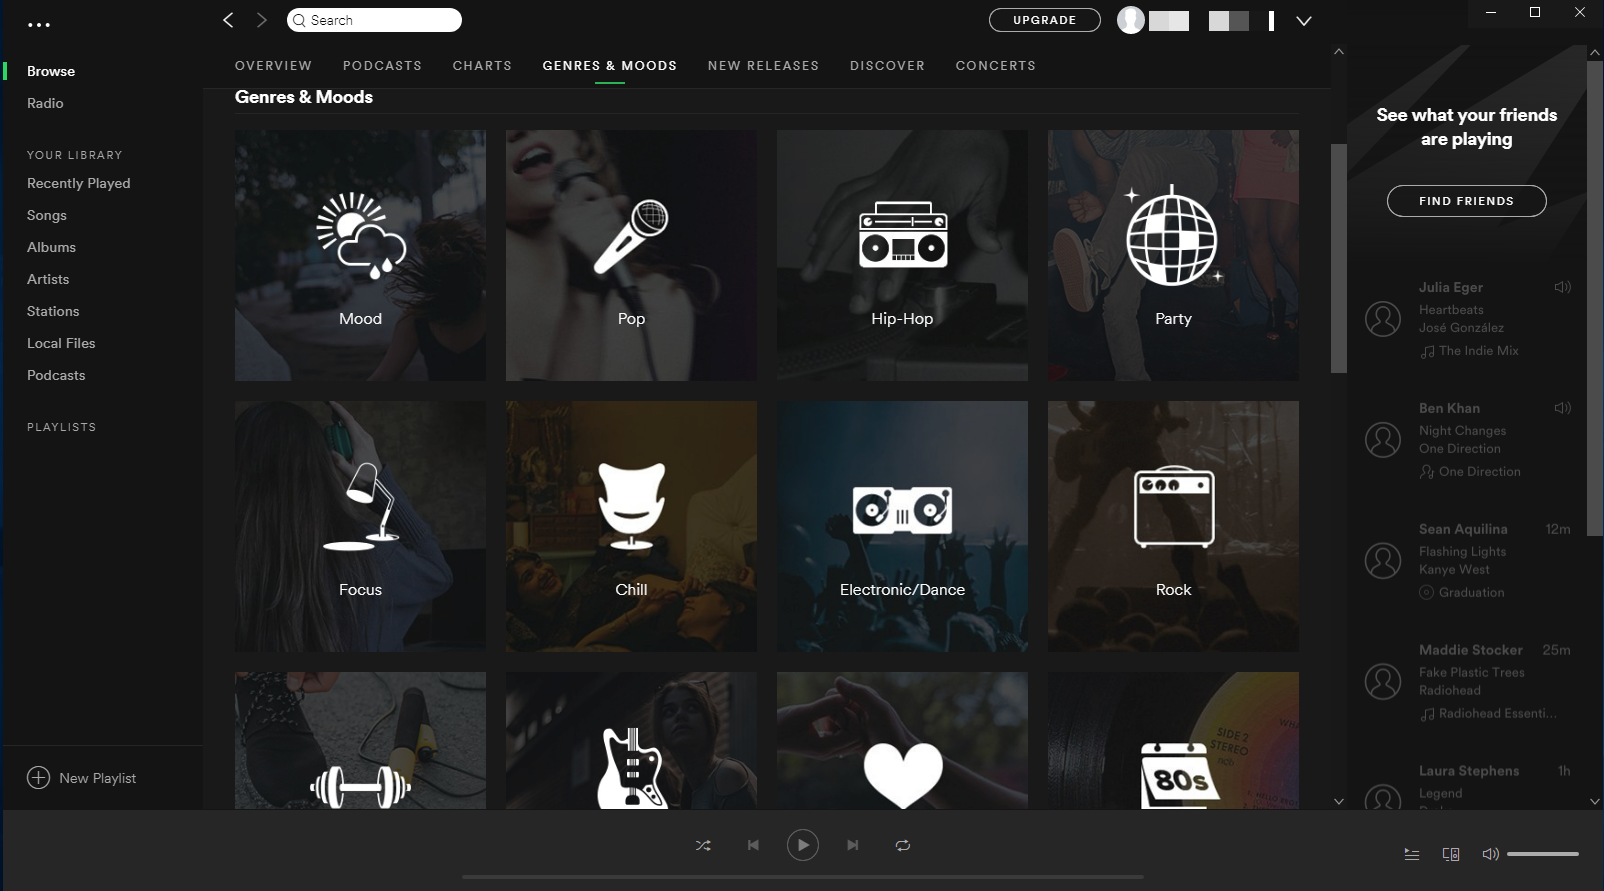 Interface of Spotify's user panel